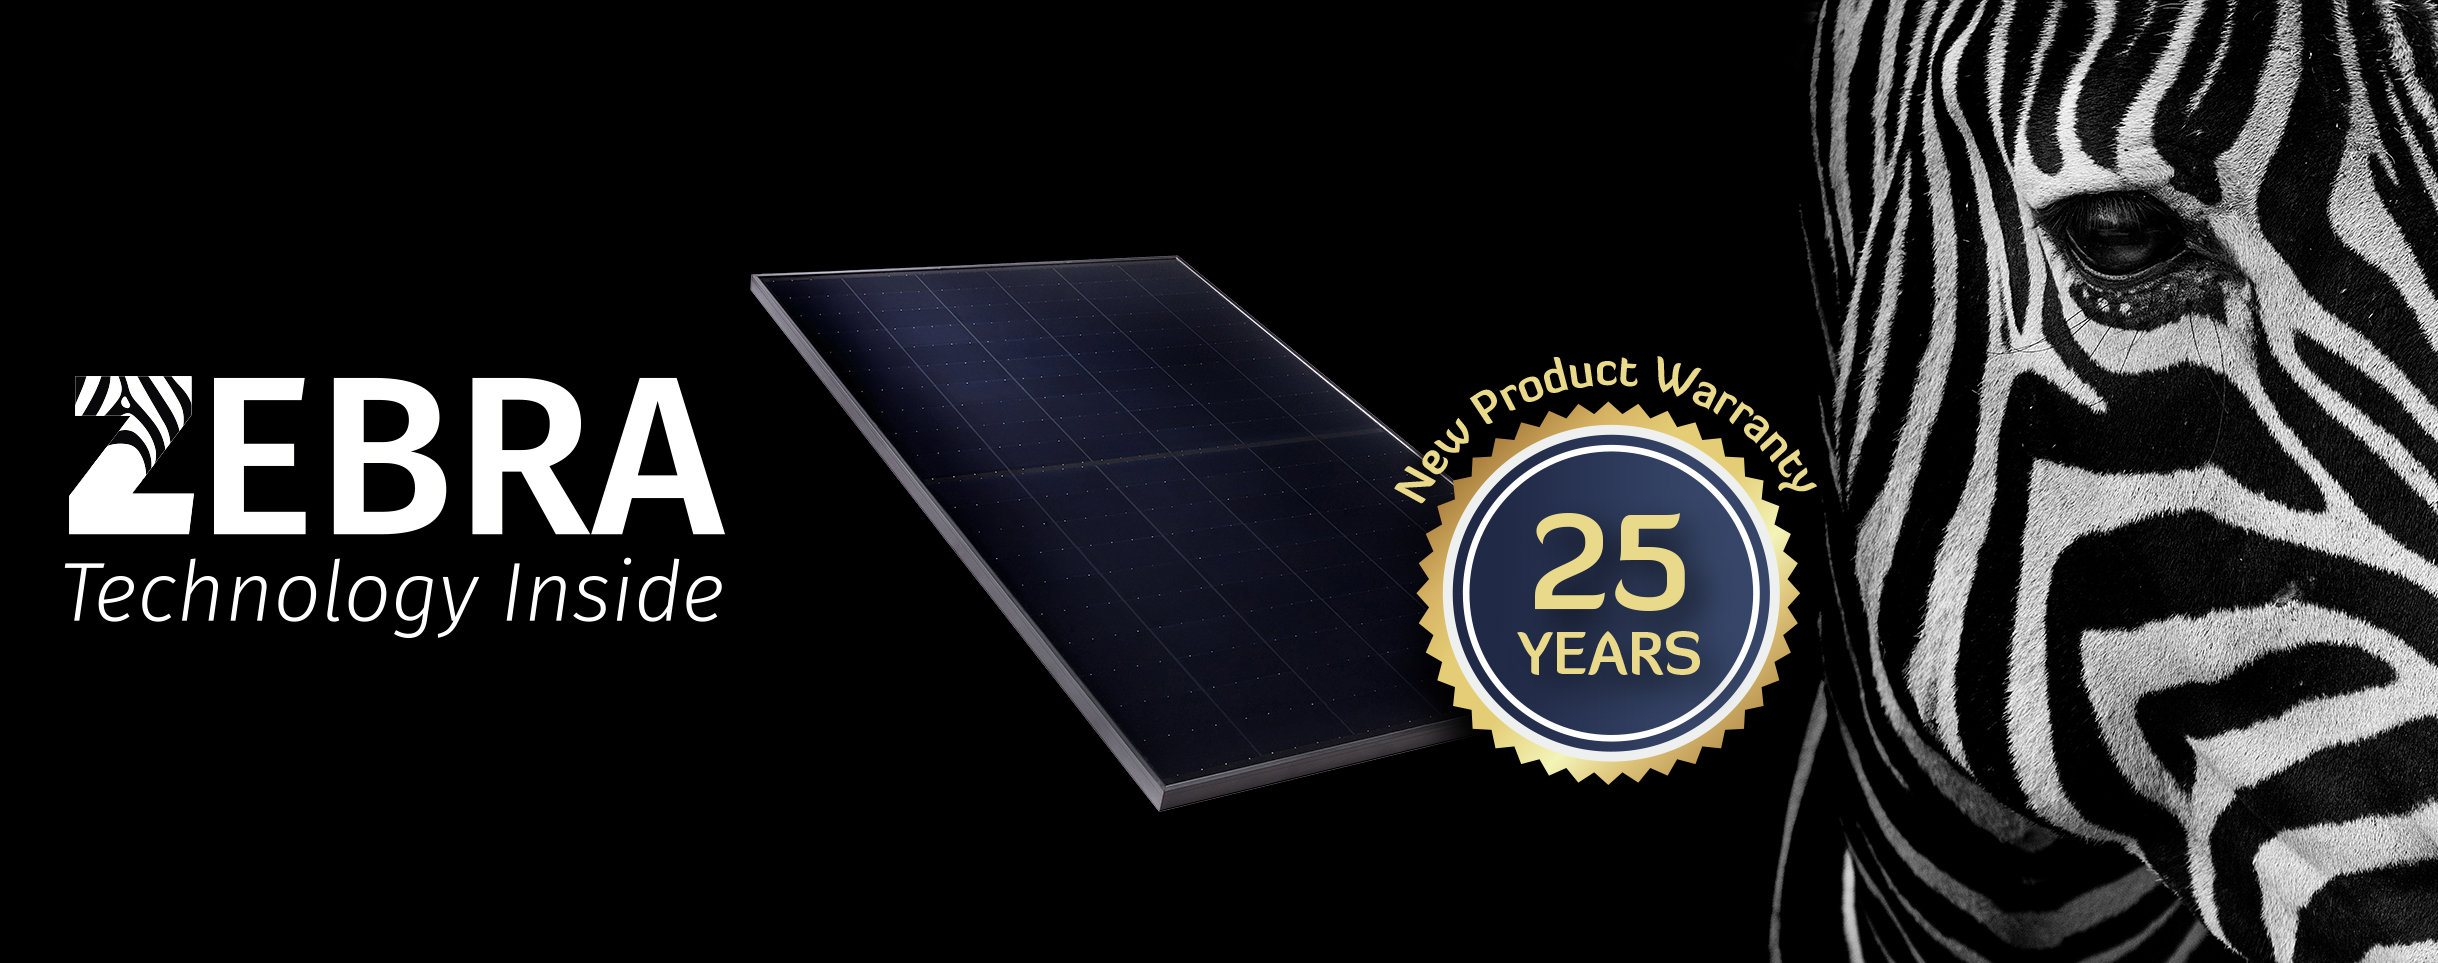 Pv Panels Zebra 340 350 Wp Back Contact Monocrystalline 120 Half Cut Ibc Cells All Black